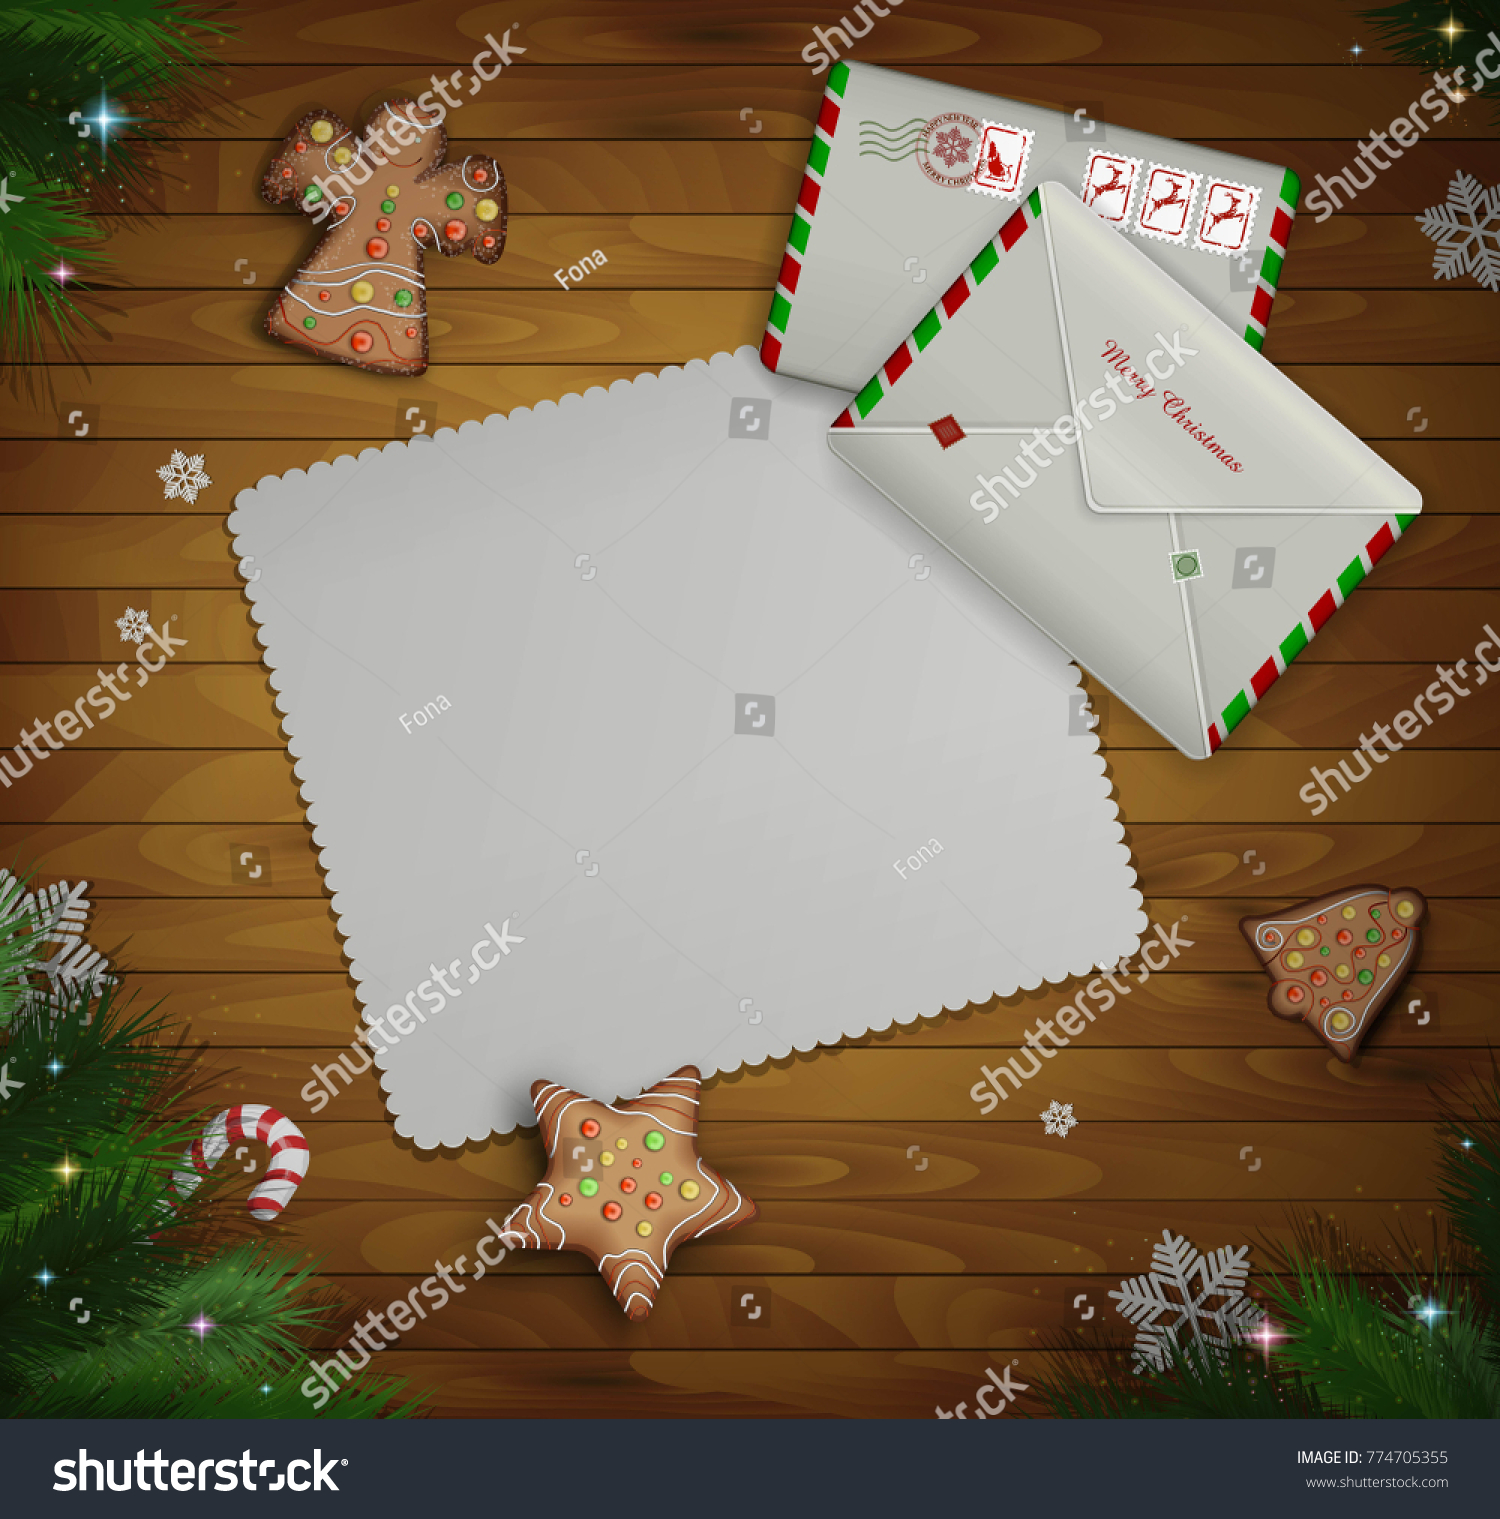 Paper Christmas Invitation Two Mail Envelopes Stock Vector 774705355 ...